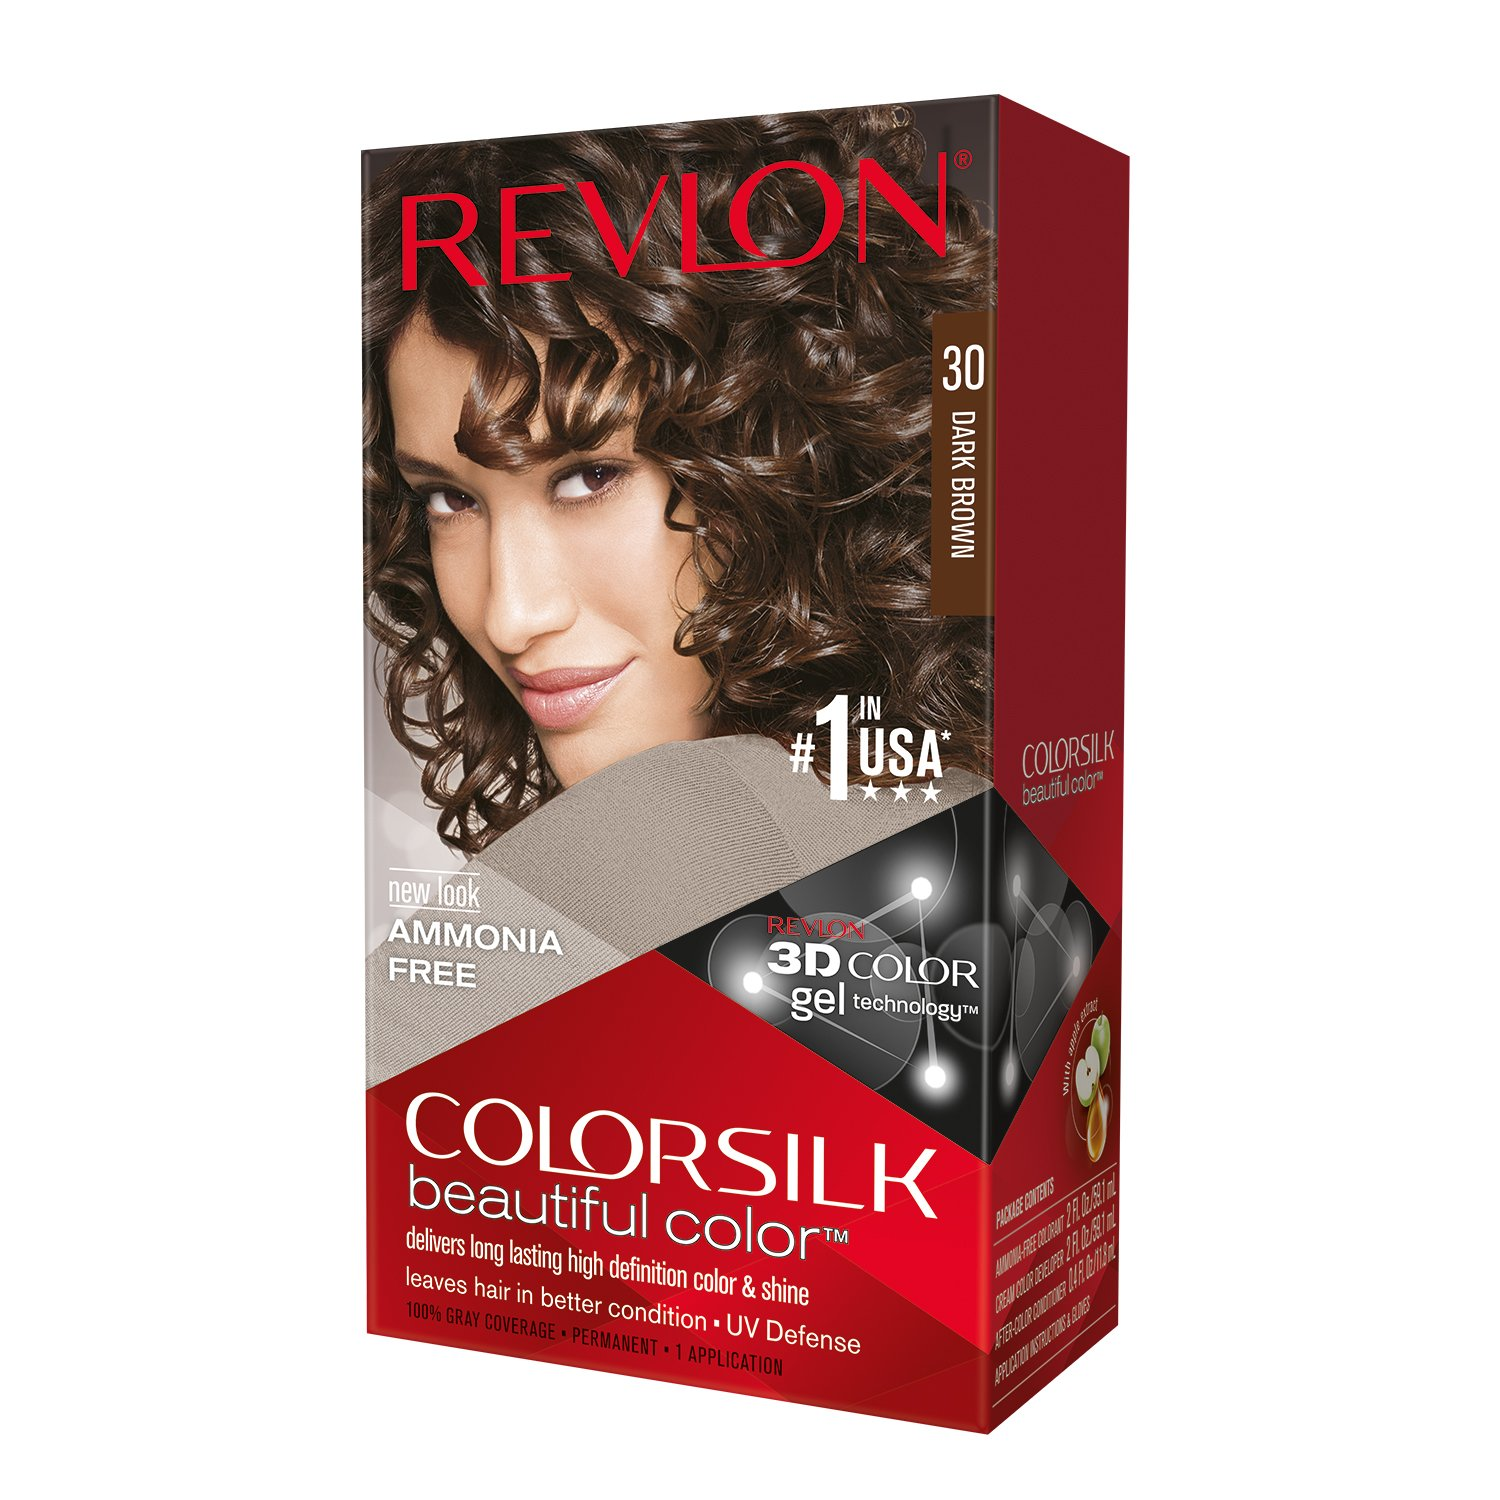 Revlon Color Silk Beautiful Hair Color, Dark Brown 30